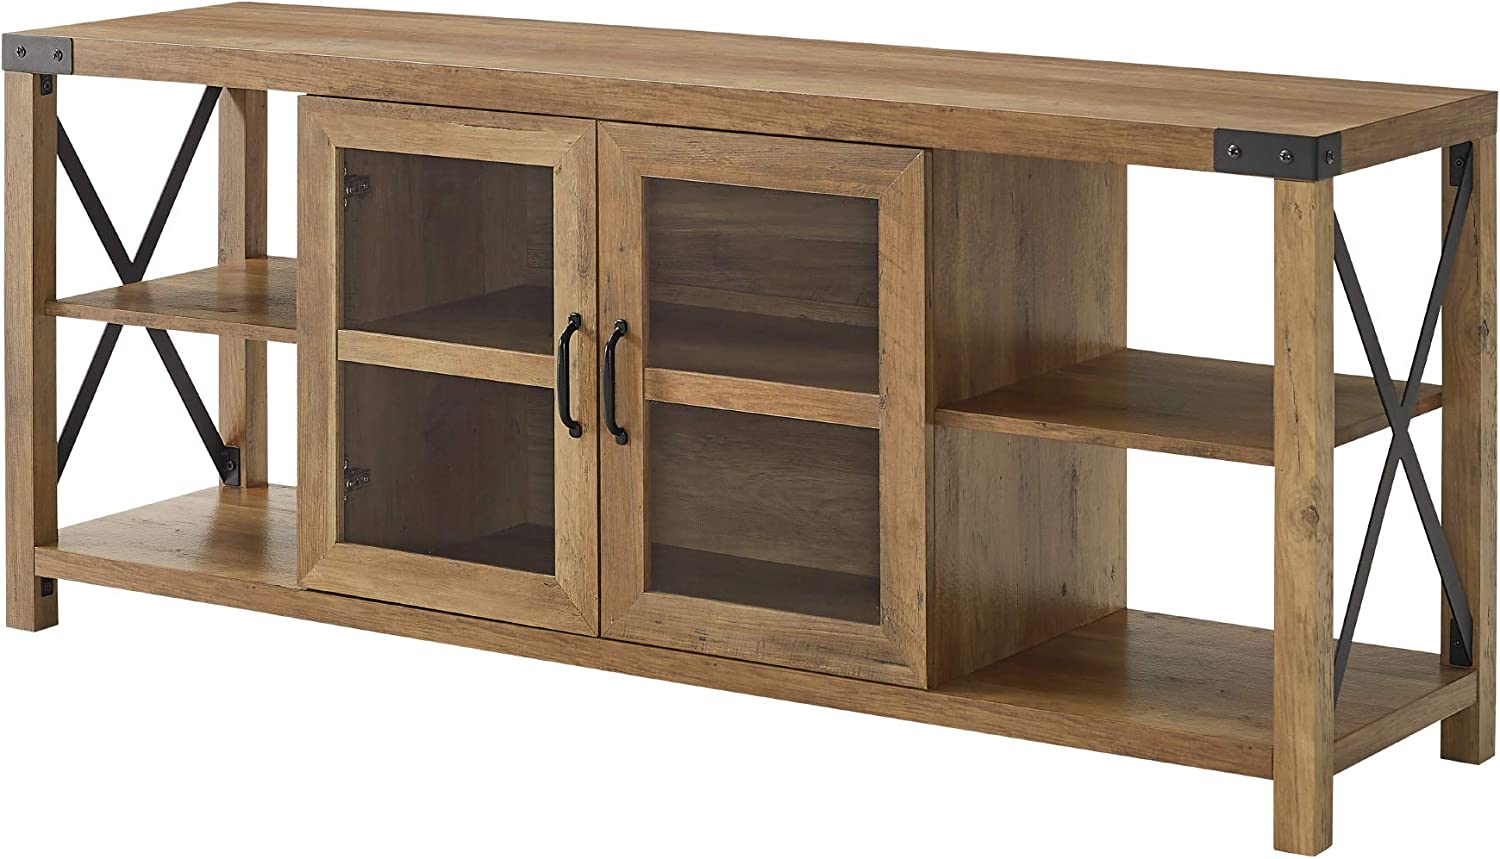 60 Inch Walker Edison Furniture Company Modern Farmhouse Metal X Wood TV Stand Storage Cabinet for TVs up to 64 Flat Screen Living Room Storage Entertainment Center Brown Reclaimed Barnwood